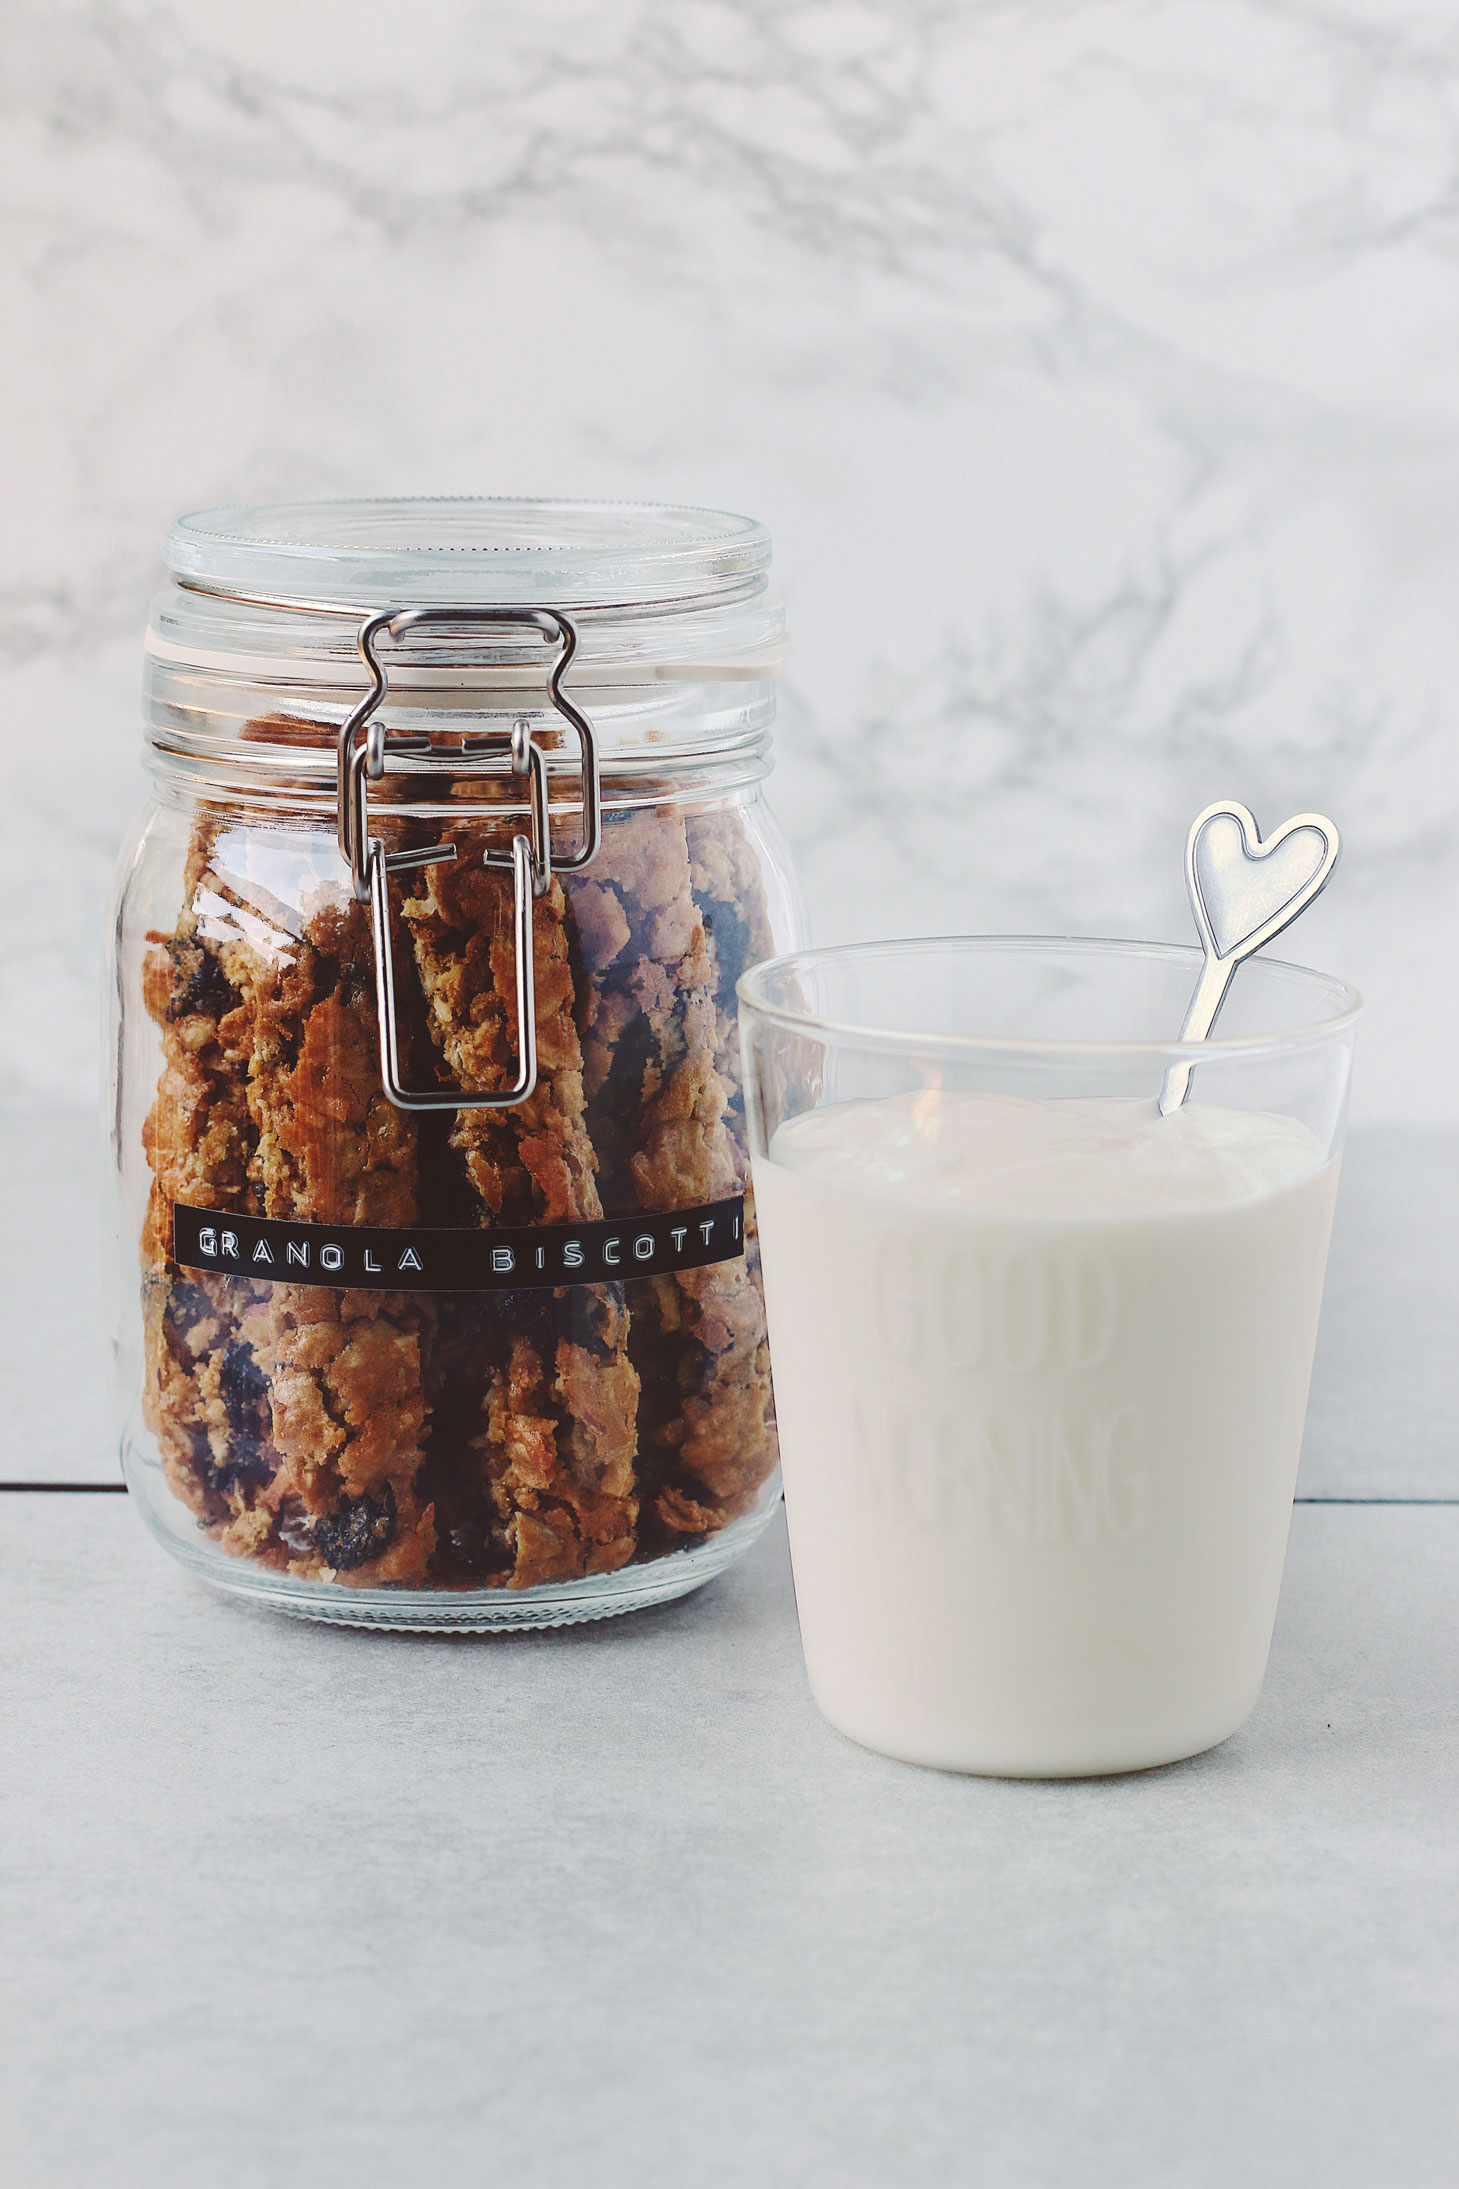 granola-biscotti-breakfast-dip-with-yogurt-morning-small